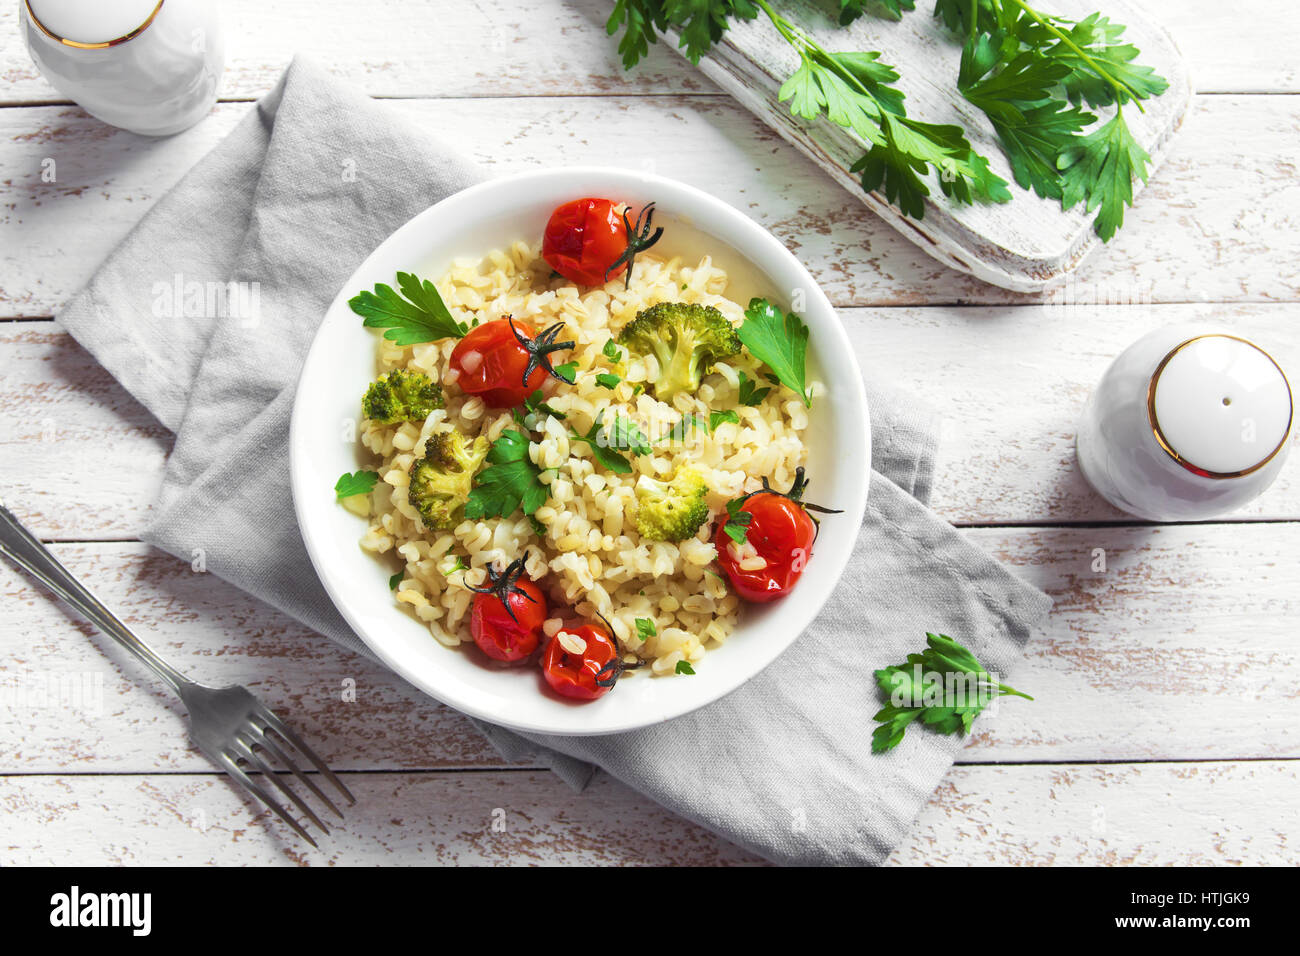 Bulgur with Vegetables: tomatoes, broccoli and parsley on white wooden background - healthy homemade organic vegan - Stock Image